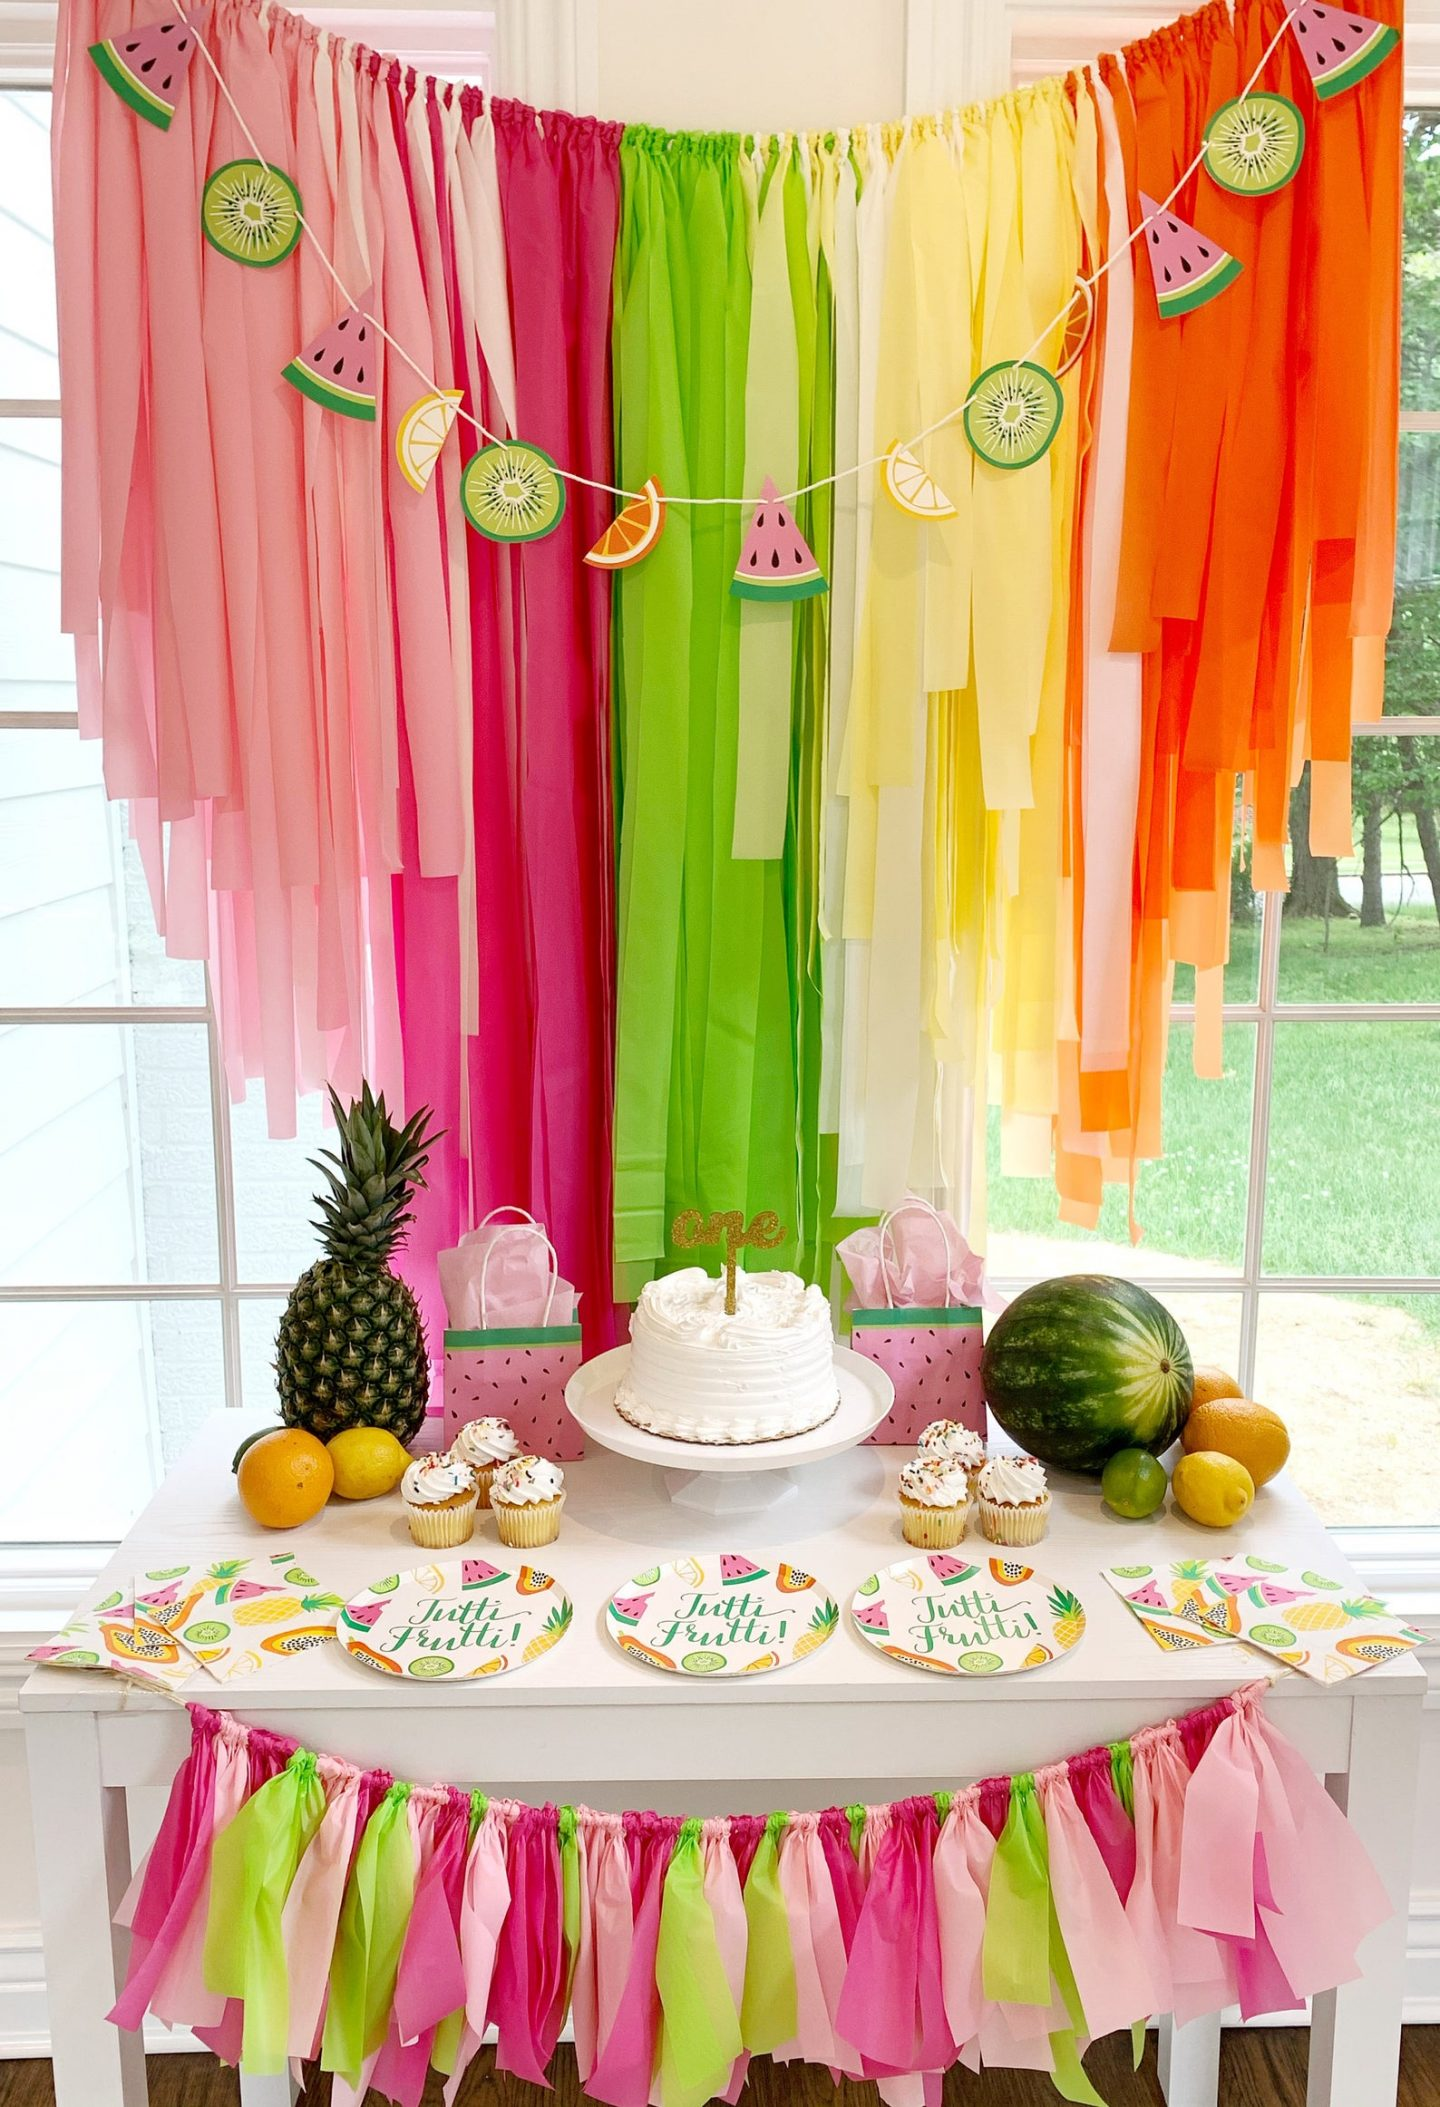 Birthday decoration with rainbow and watermelon fringes